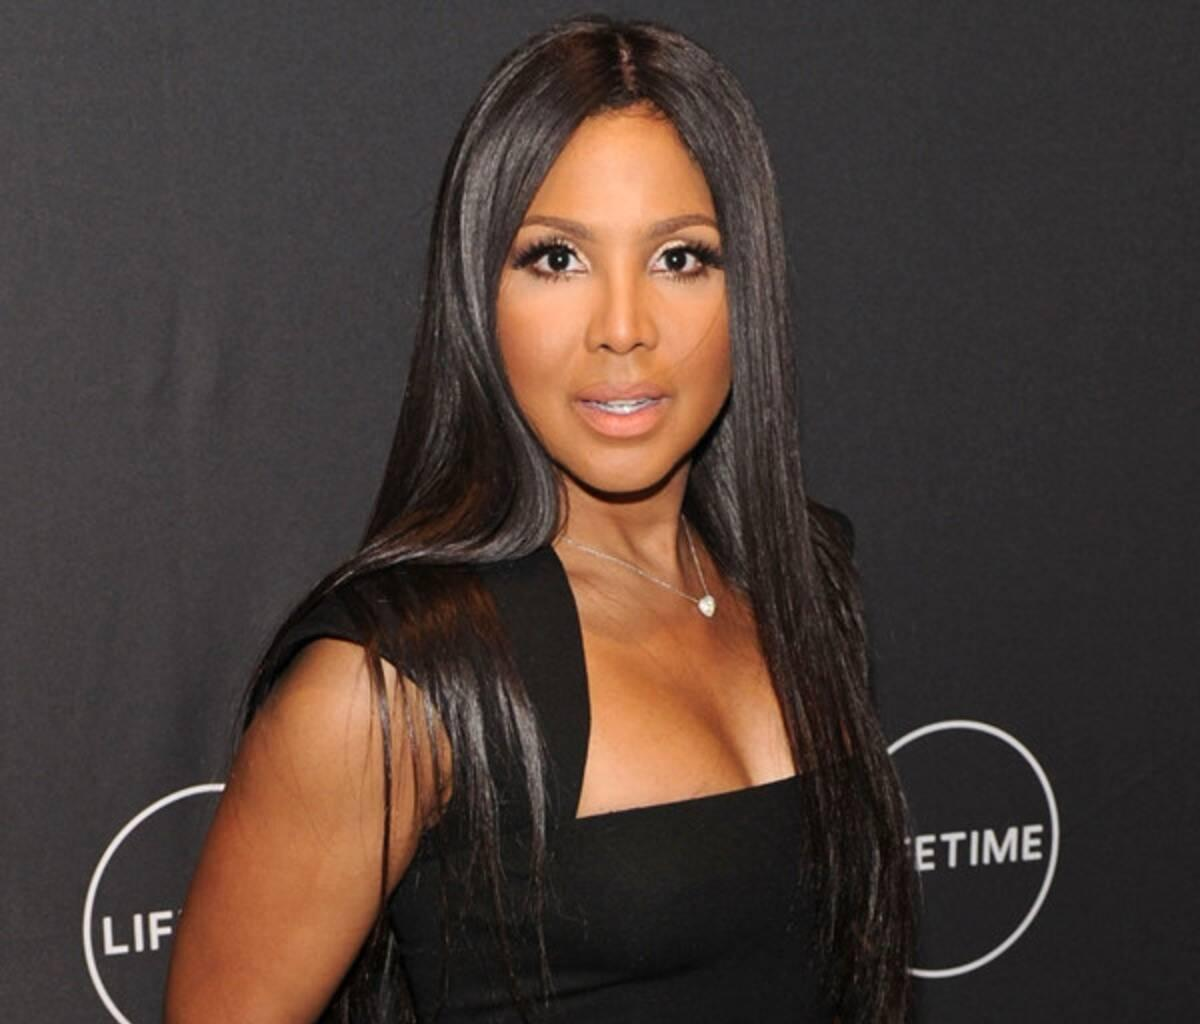 Toni Braxton Has A New Single Out Today - The Revealing Promo Photos Are Stunning!